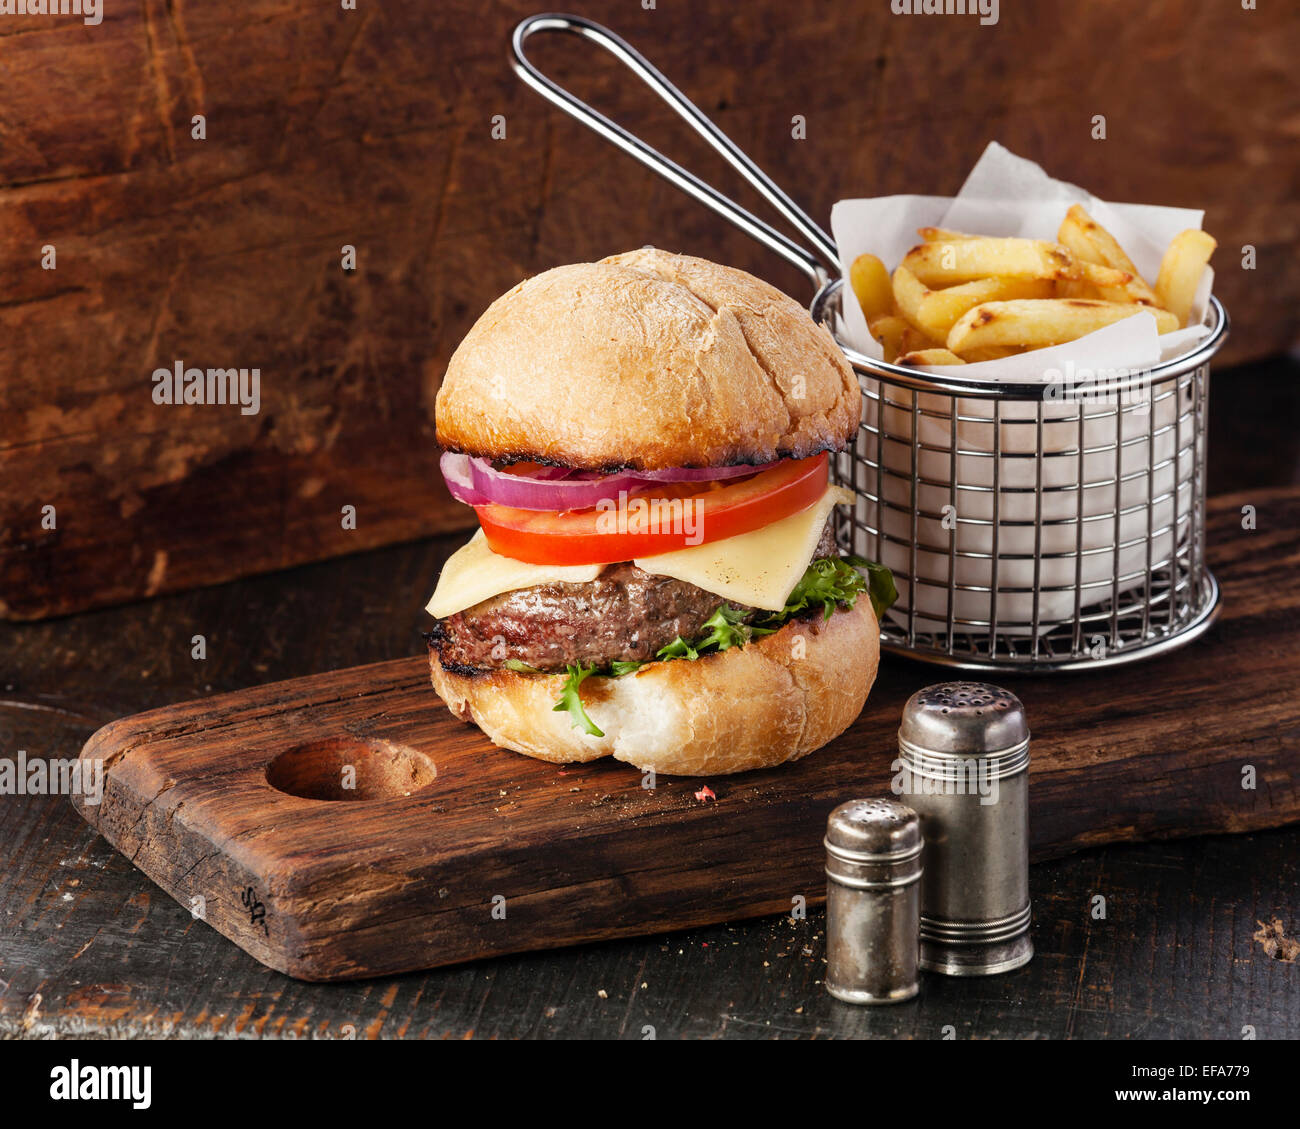 Burger with meat and French fries in basket on wooden background - Stock Image